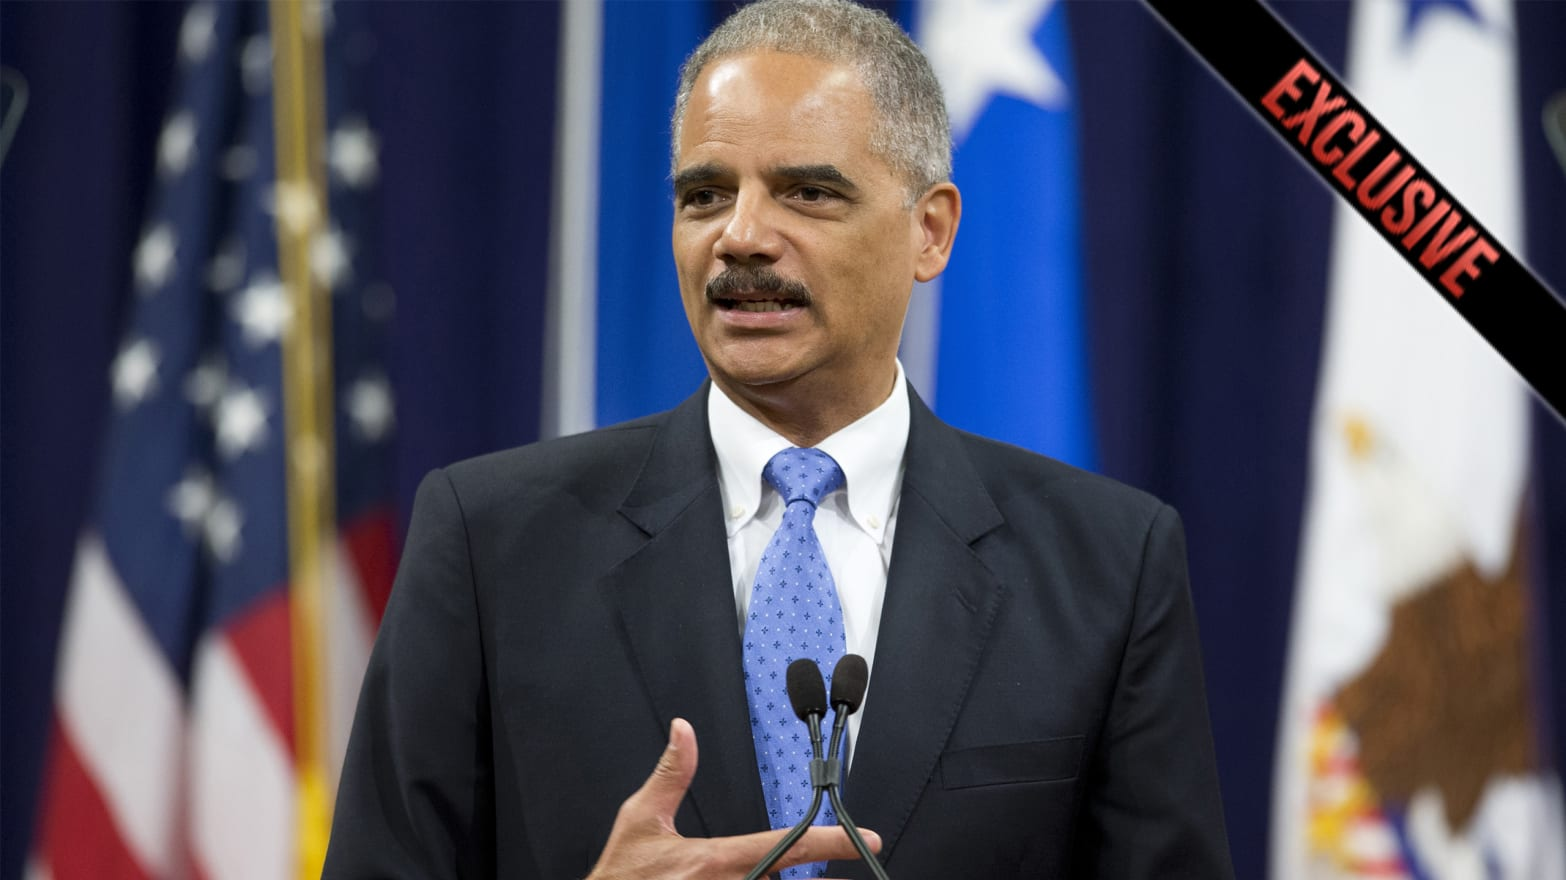 How Eric Holder Got His Chance to Overhaul Broken Sentencing System